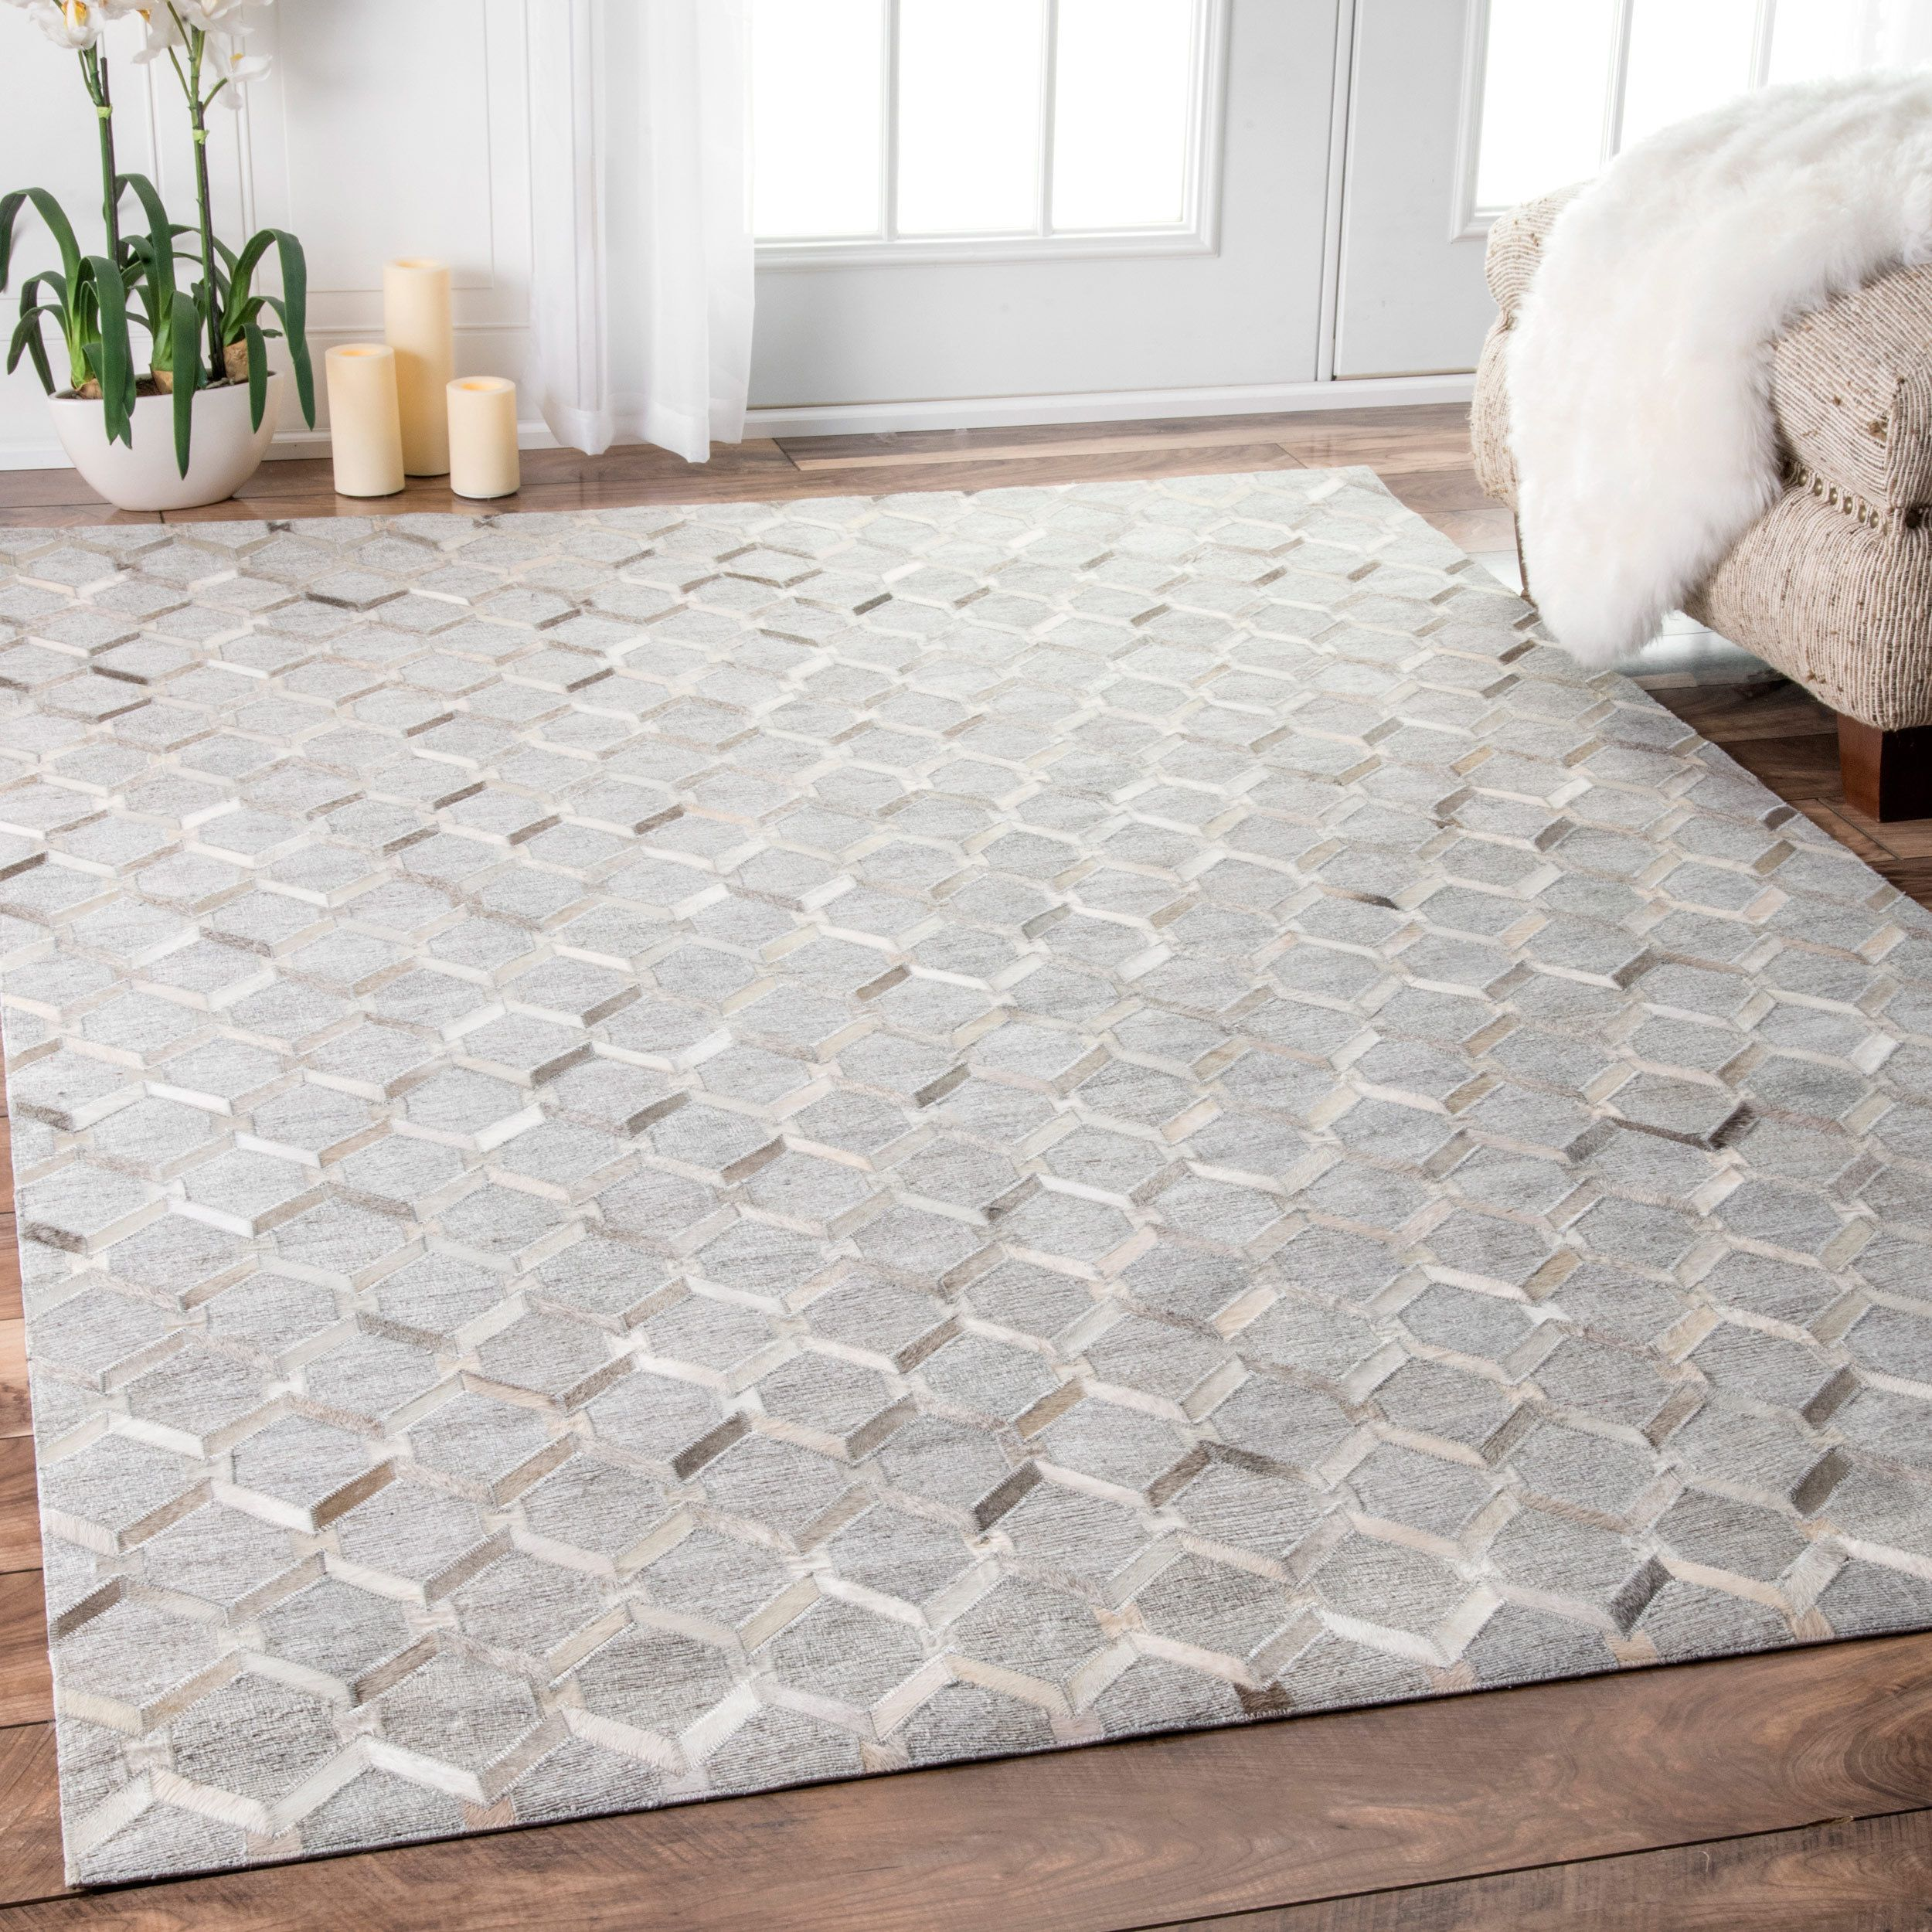 Awesome Bring An Elegant Look Into Your Home With This Premium Quality Leather And  Viscose Area Rug